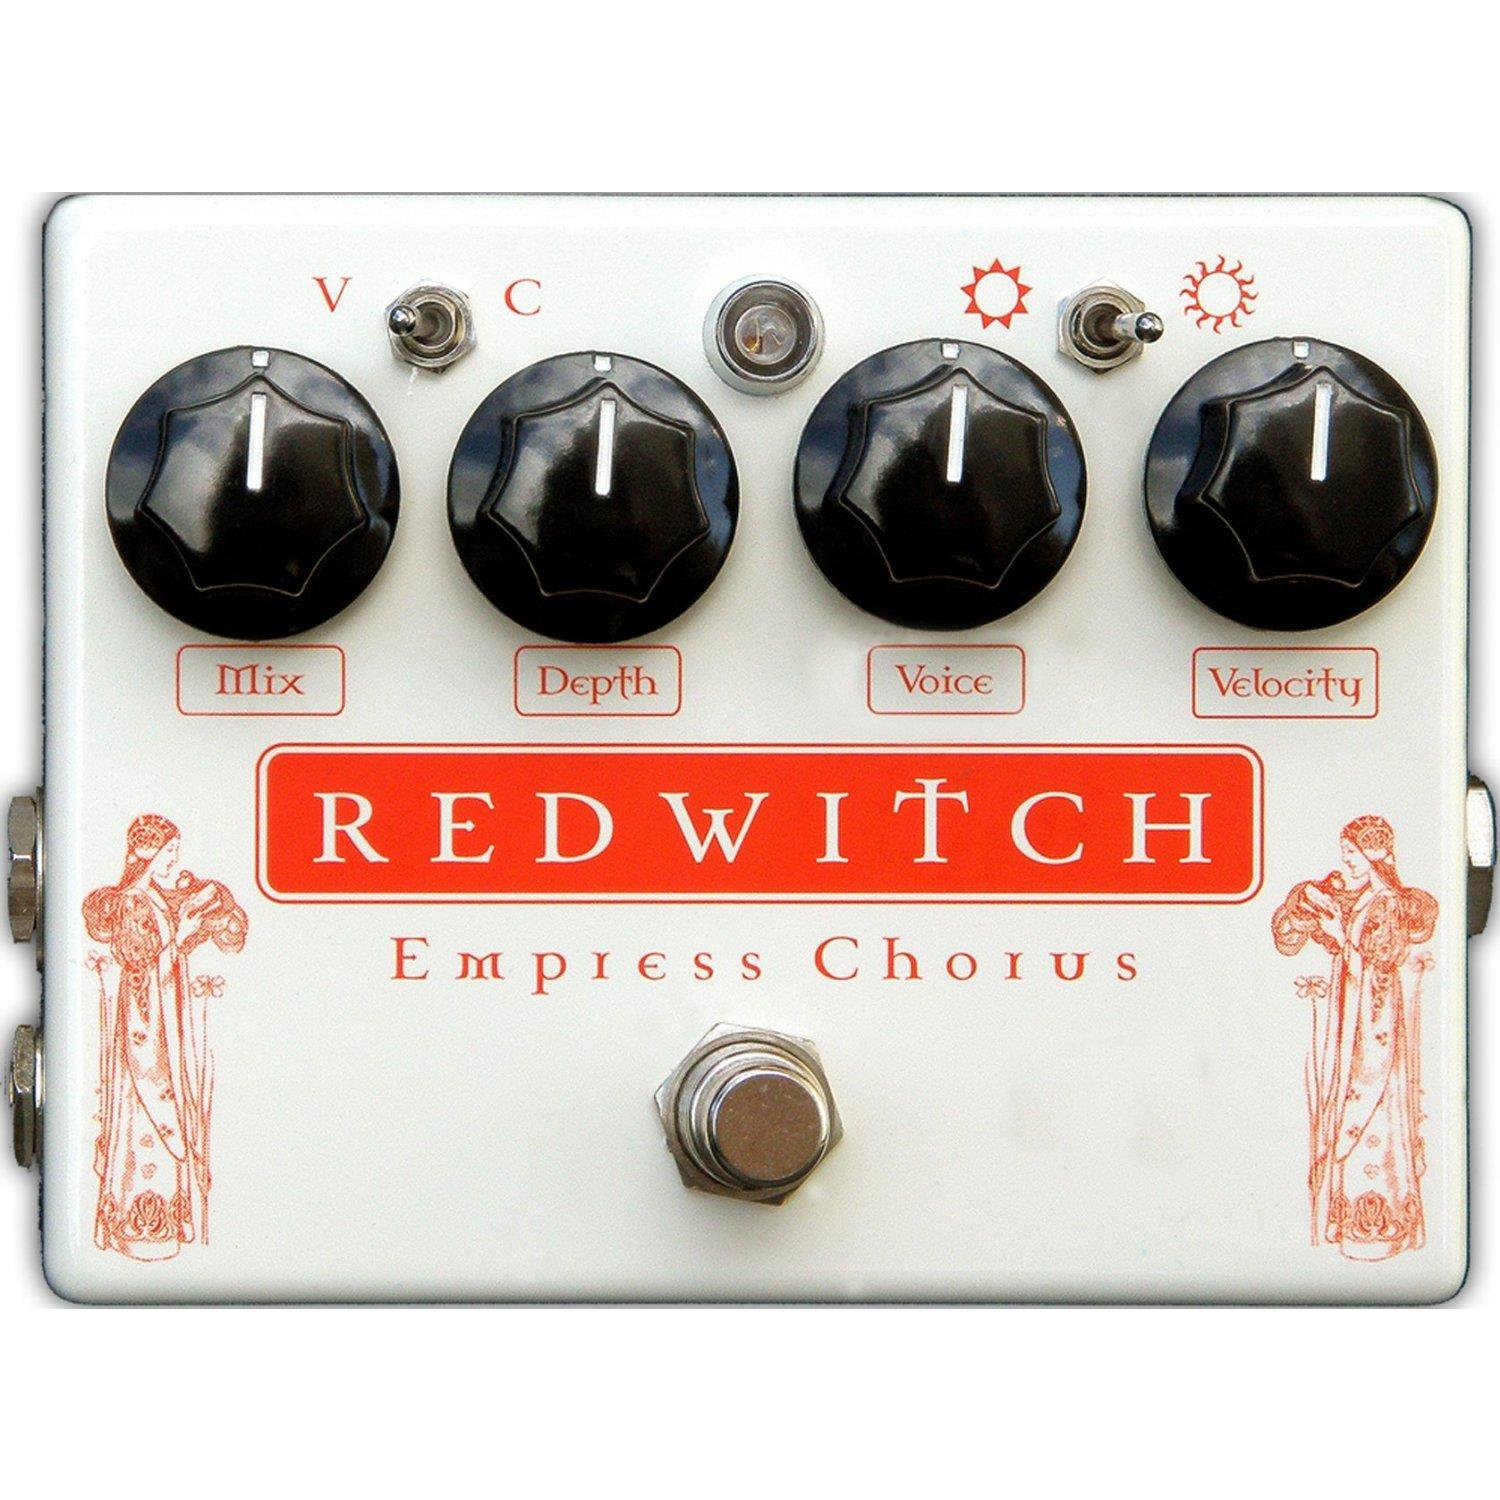 RED WITCH EMPRESS CHORUS/VIBRATO EFFECTS PEDAL